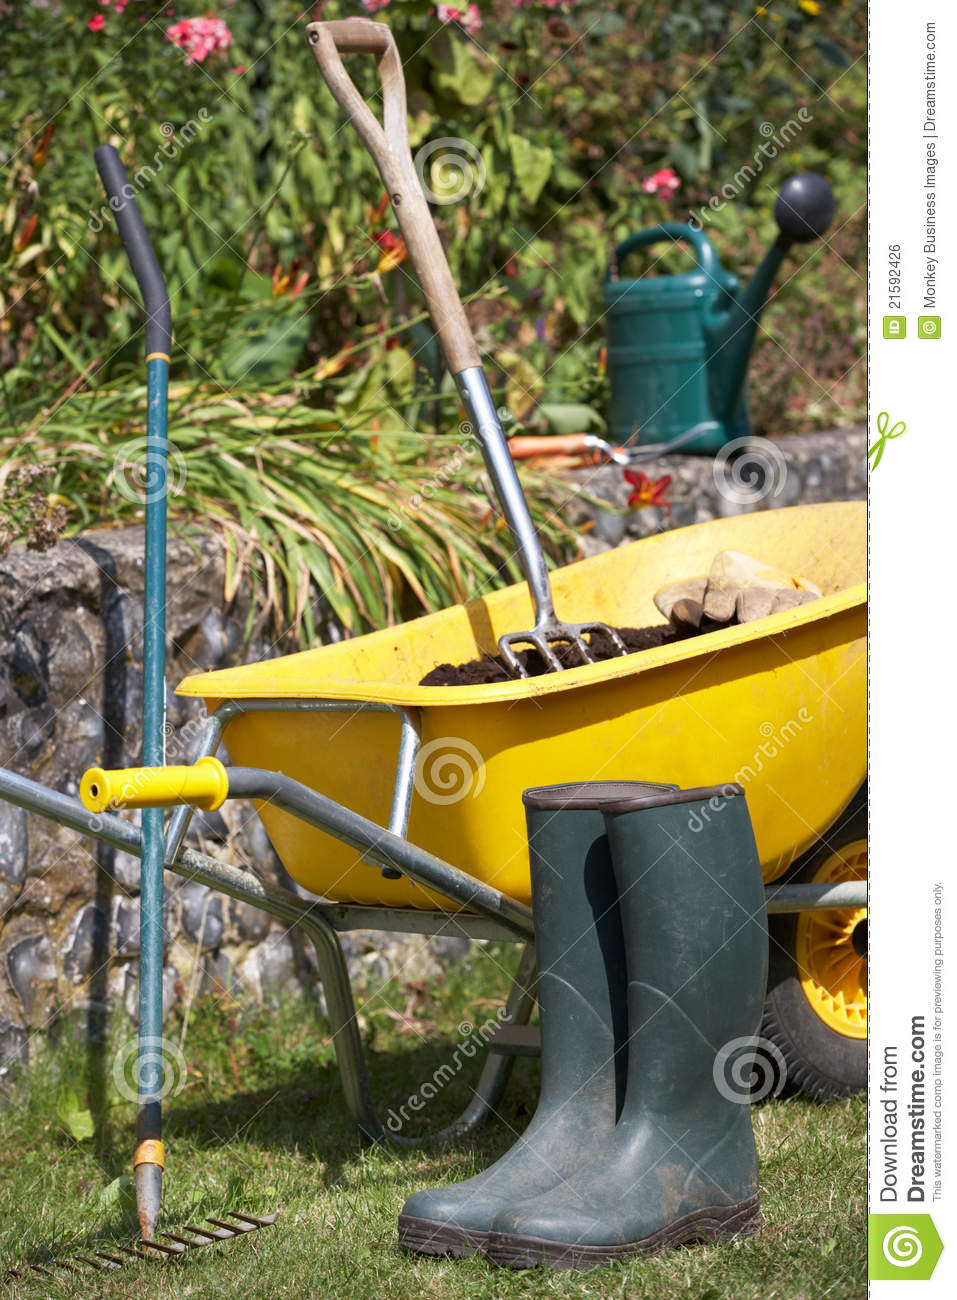 Gardening tools and accessories royalty free stock image for Gardening tools and accessories